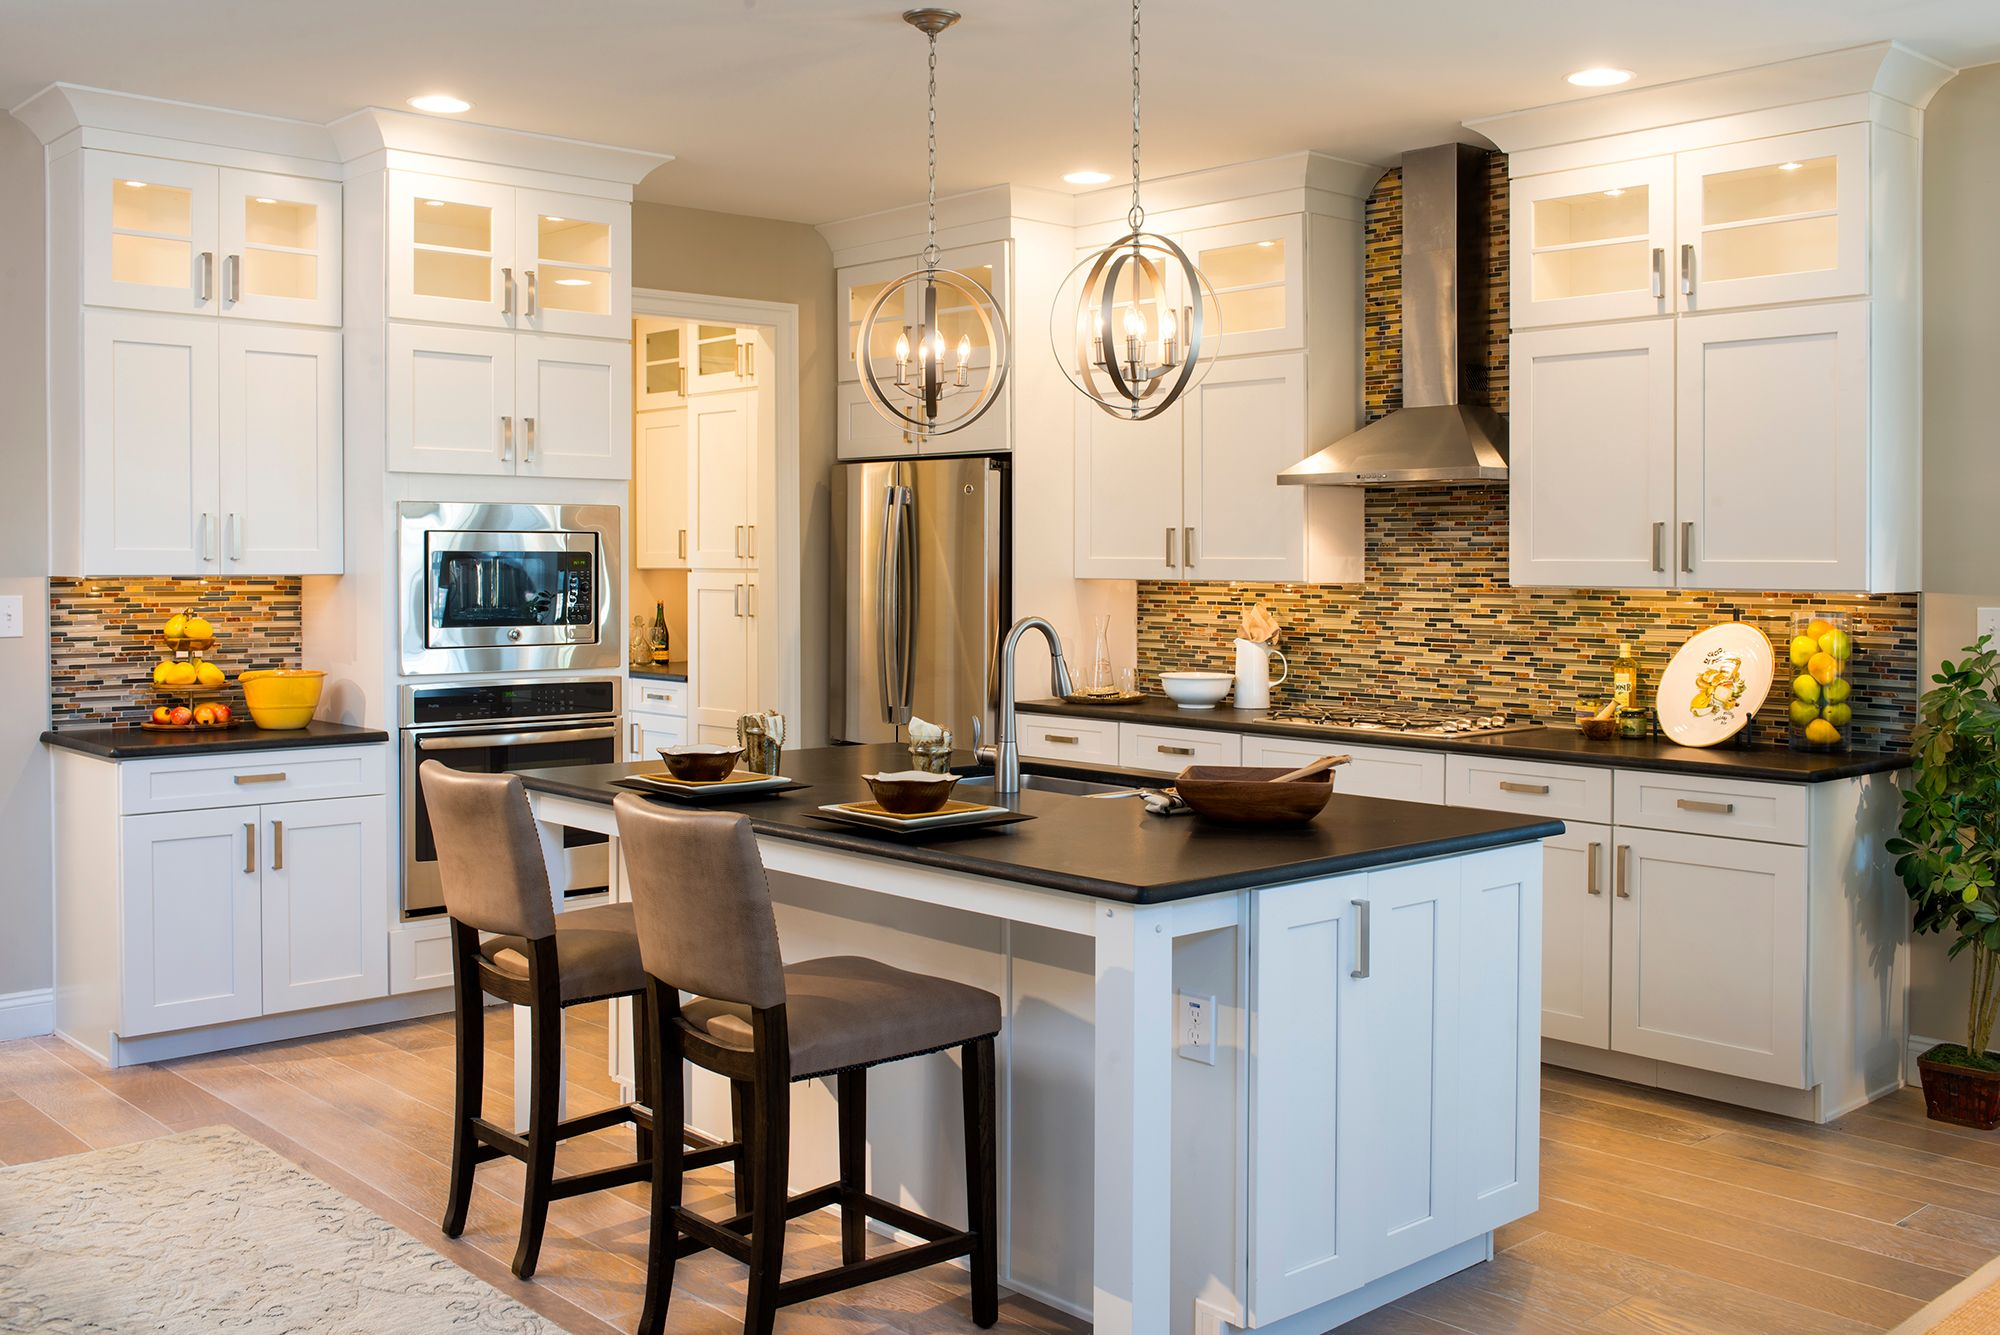 Kitchen featured in the Manchester English Cottage By Keystone Custom Homes in Washington, MD